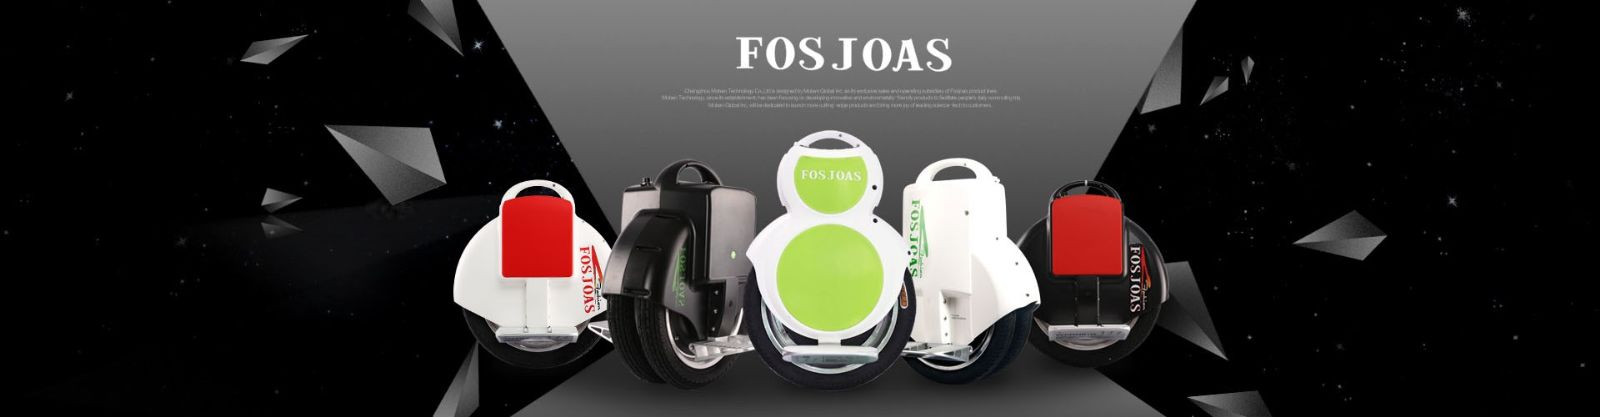 Fosjoas V3 electric self-balancing scooters